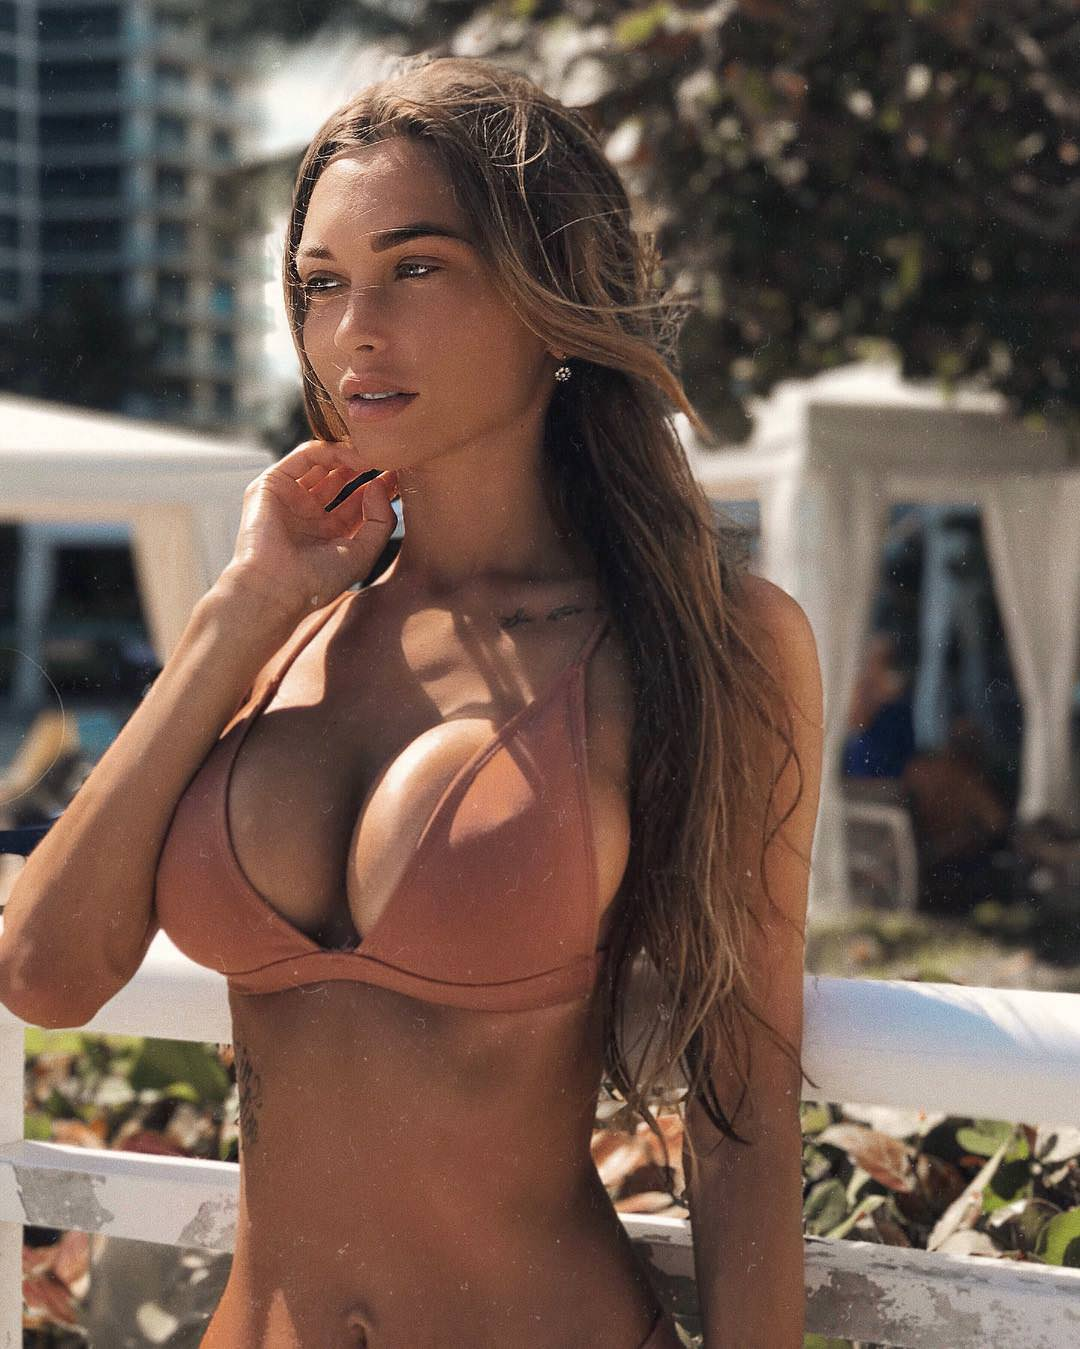 Tits Lily Ermak nudes (51 photo) Leaked, Facebook, butt